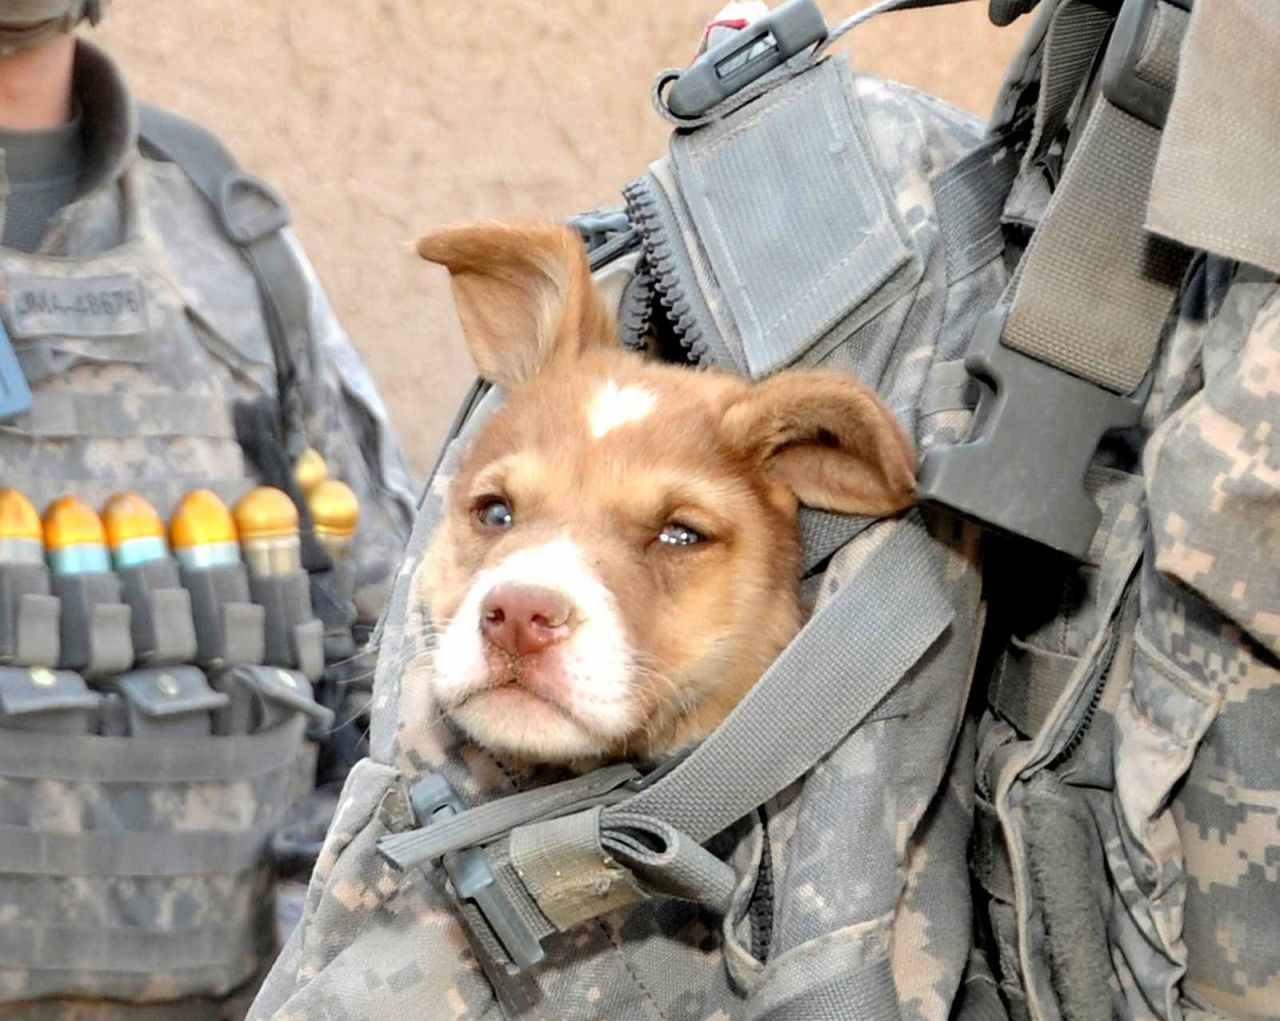 A dog rides in a U.S. soldier's backpack at Combat Outpost